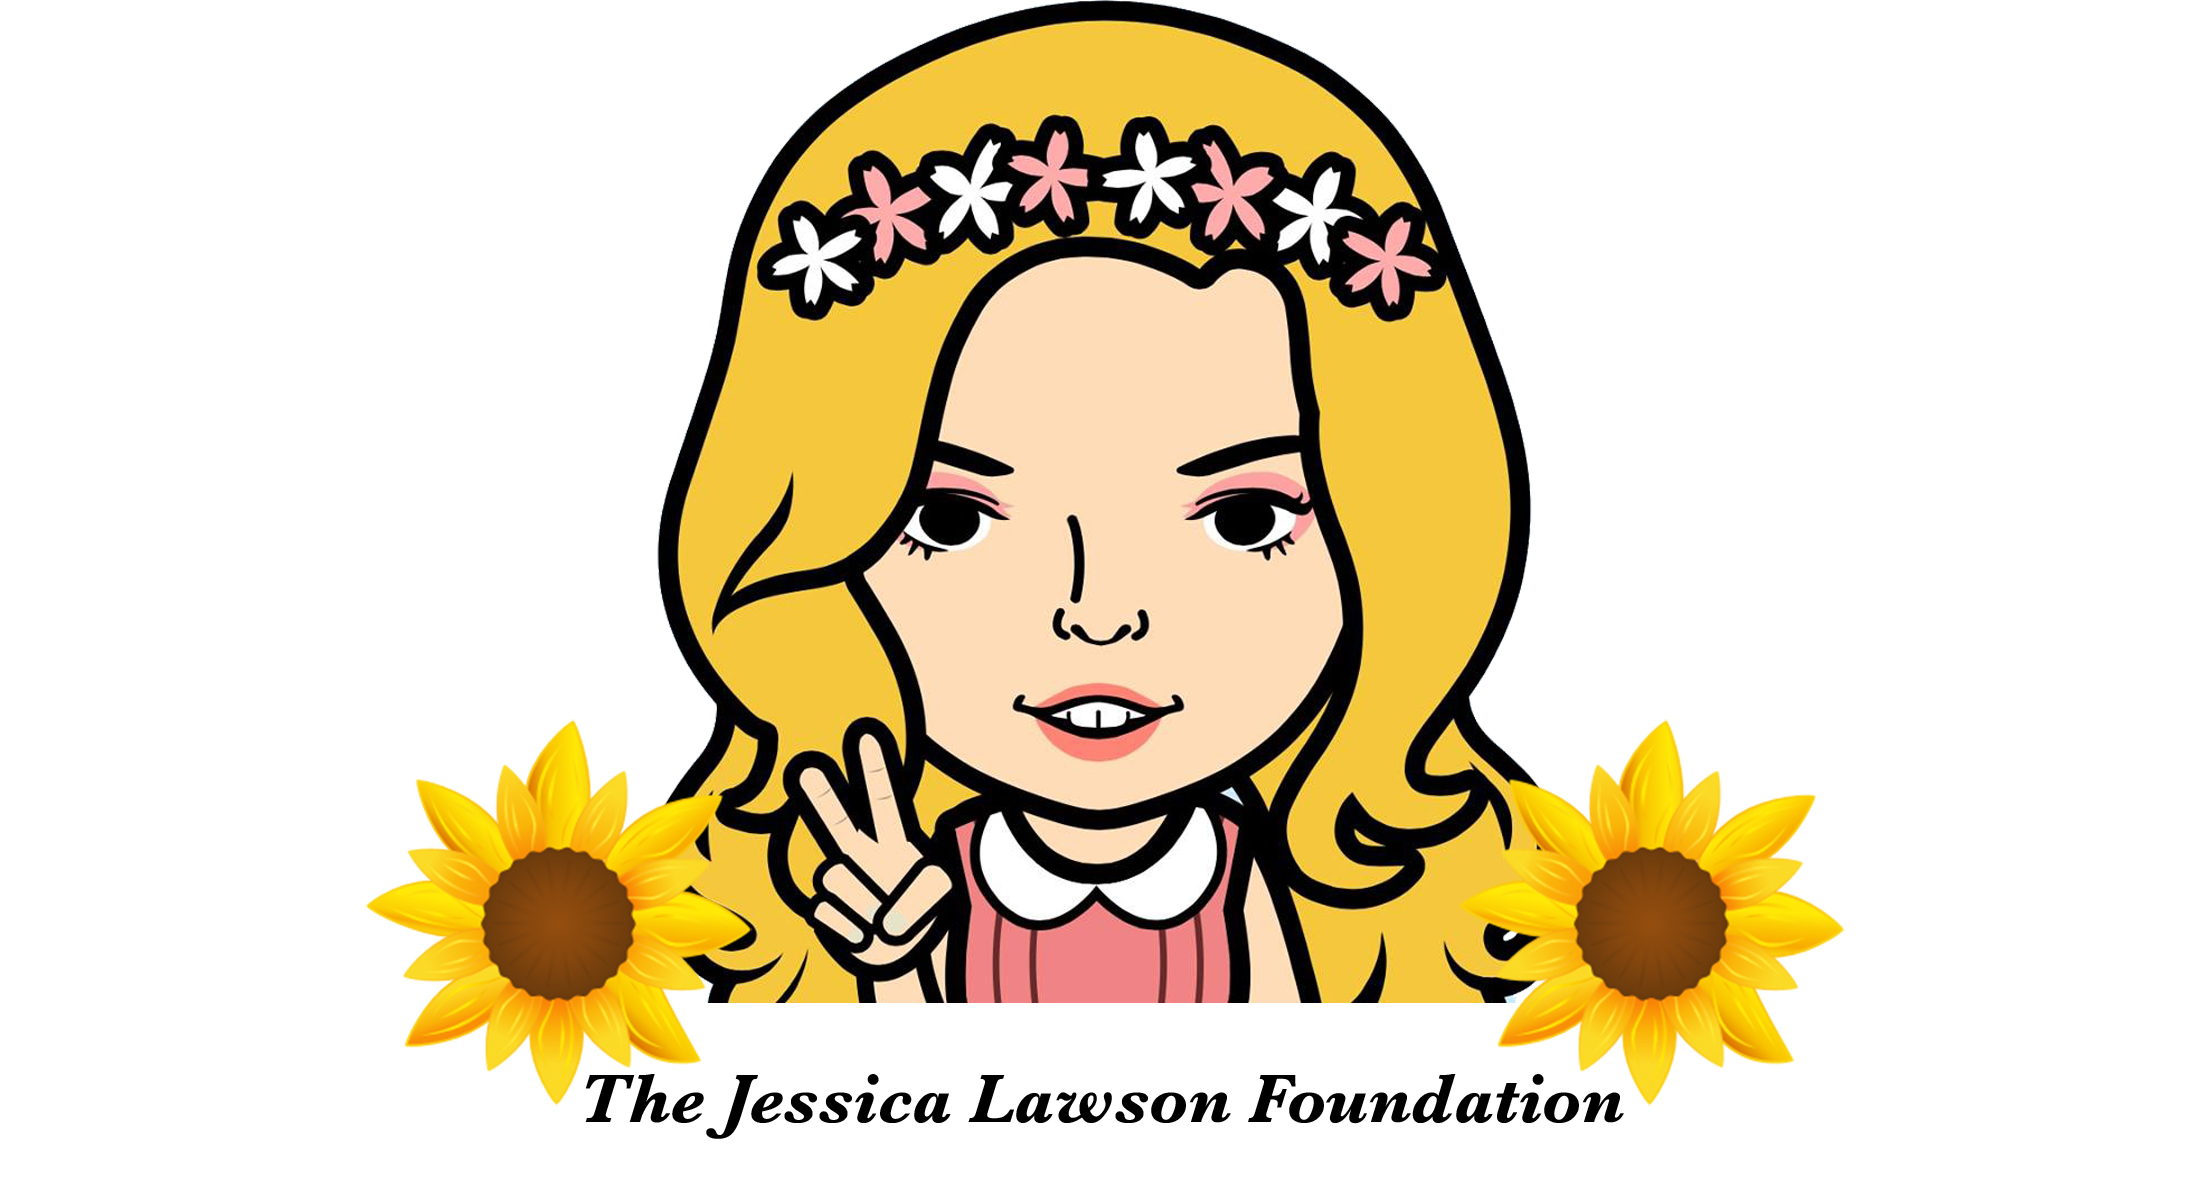 Jess created this icon of herself on her iPad.